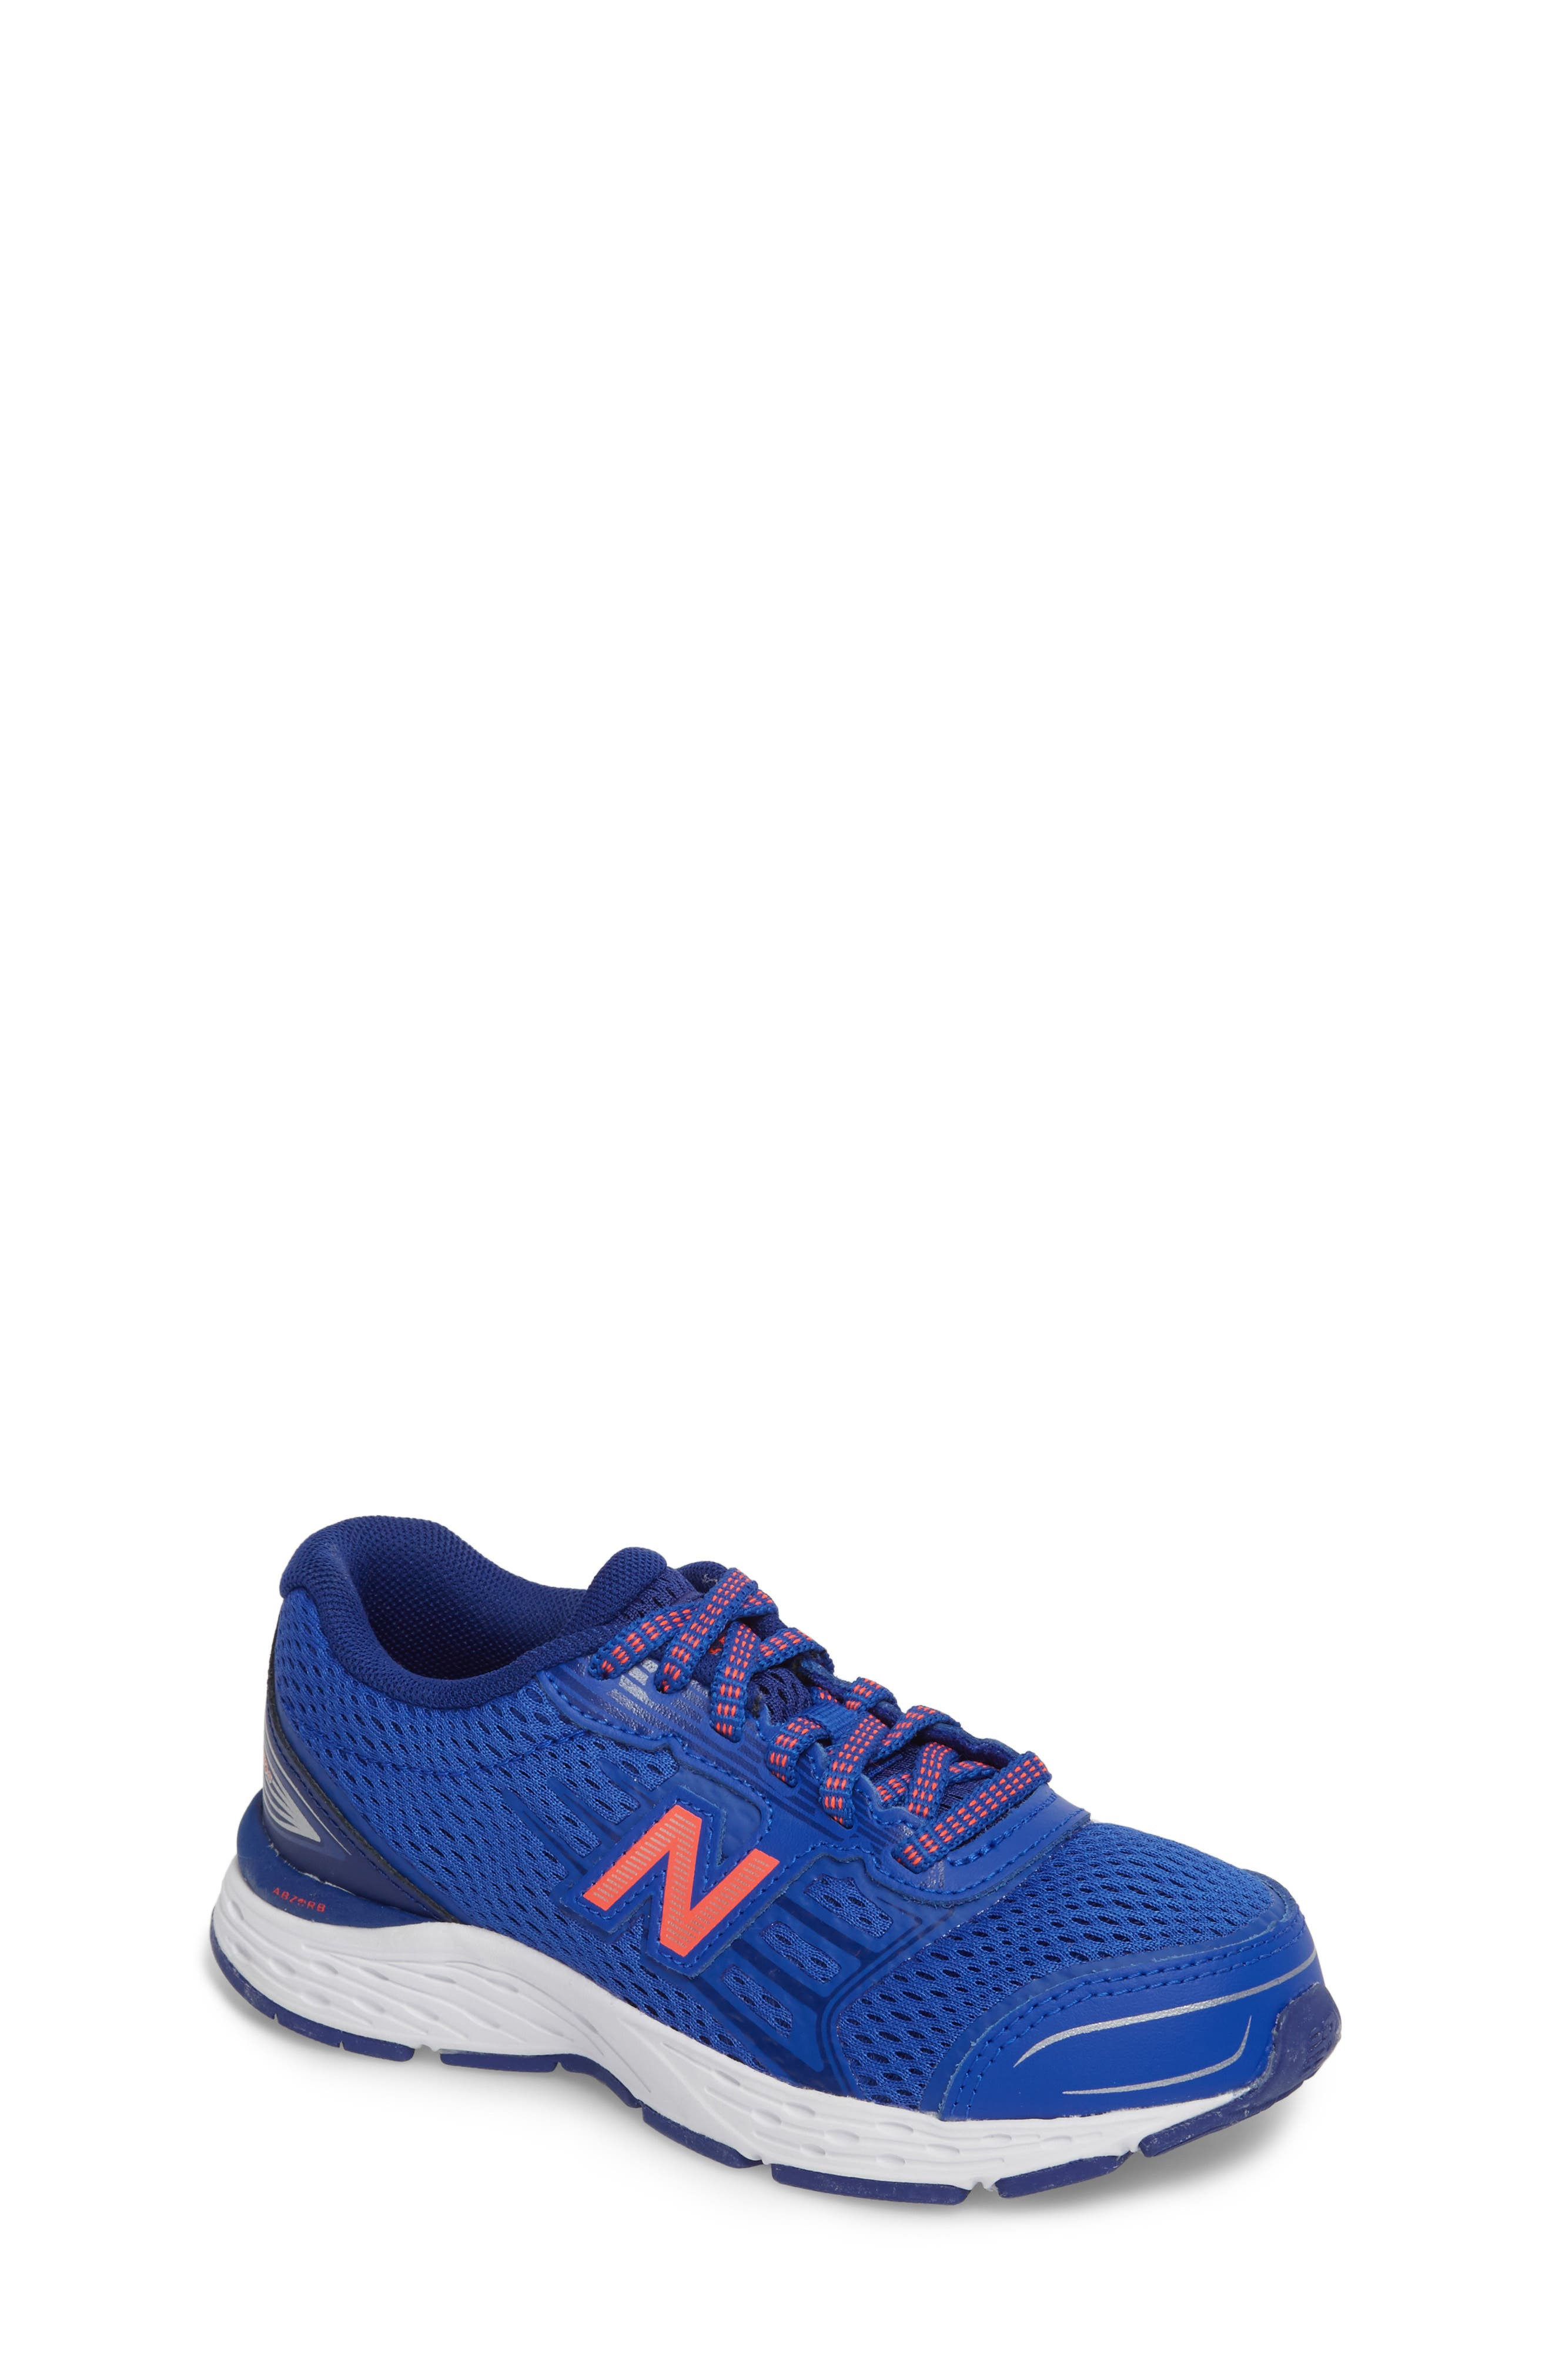 New Balance 680v5 Running Shoe (Toddler, Little Kid & Big Kid)